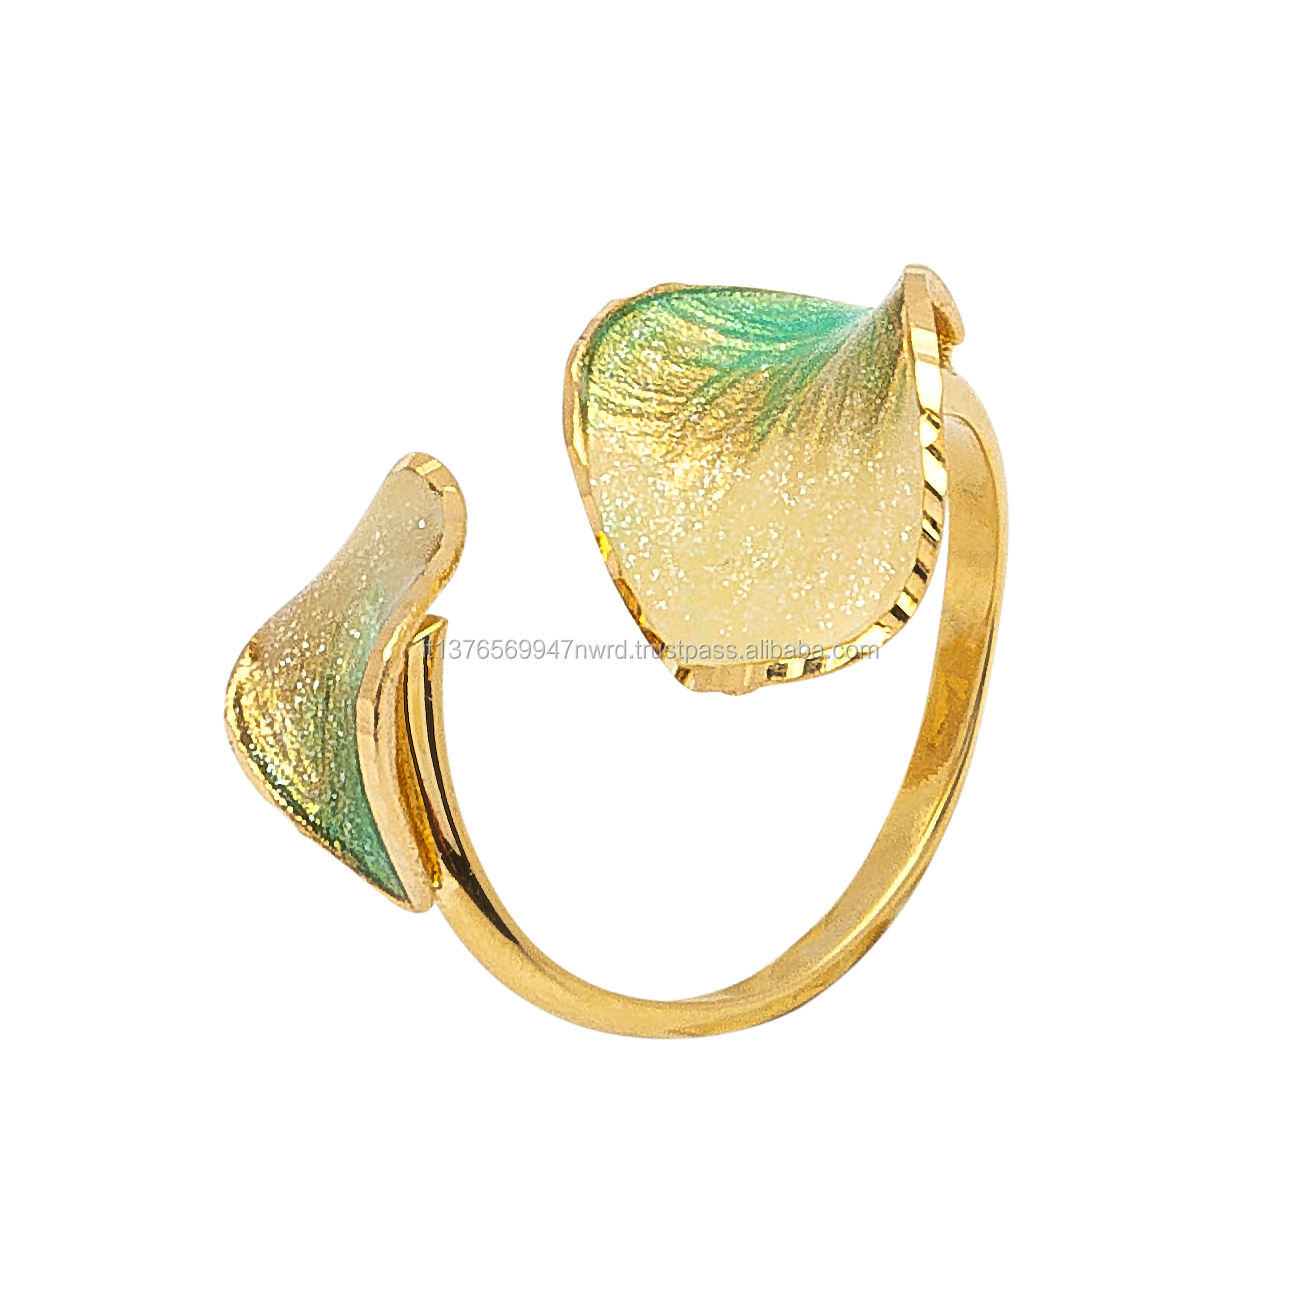 Artur Gold Incanto ANX030 9kt Gold Ring With Aquamarine Ceramic Coating Finish Petals Luxury Customizable Jewellery